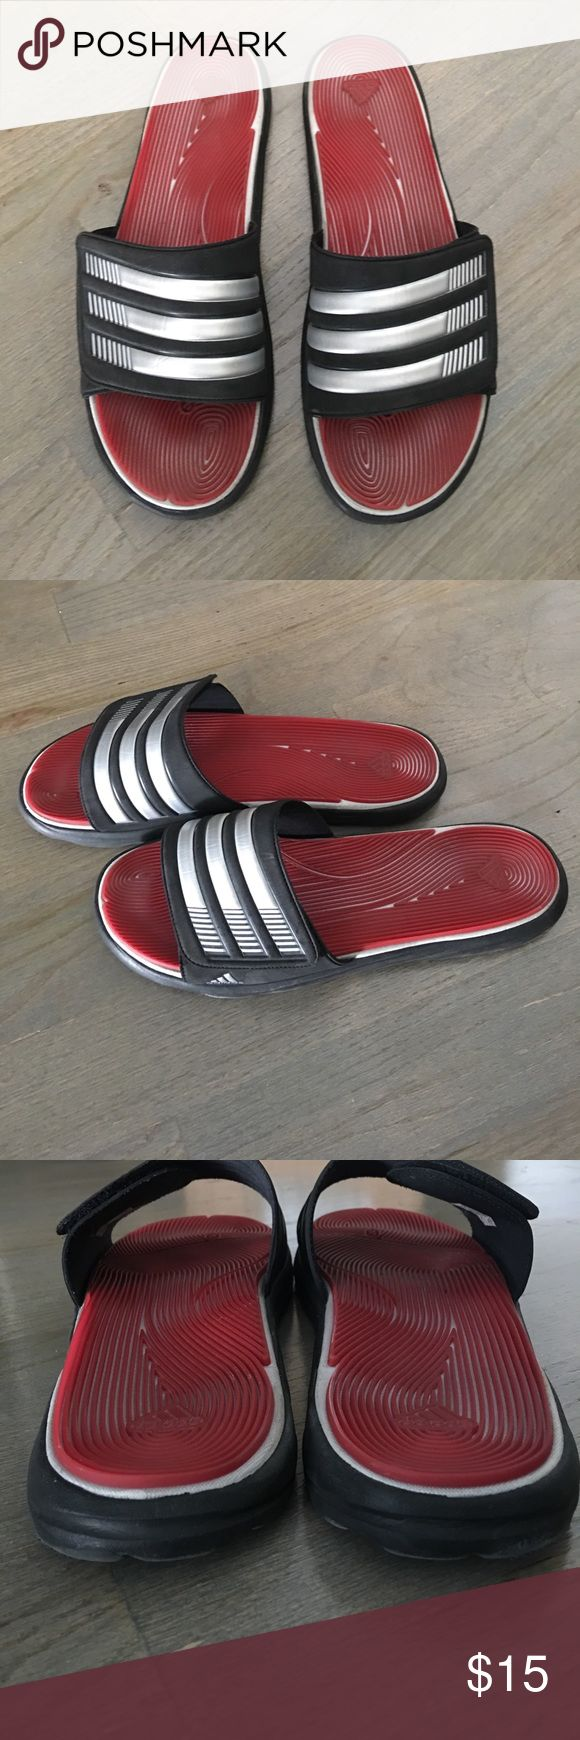 Men's Adidas flip flops Men's red and black adidas flip flops. Lightly worn. In great condition. adidas Shoes Sandals & Flip-Flops